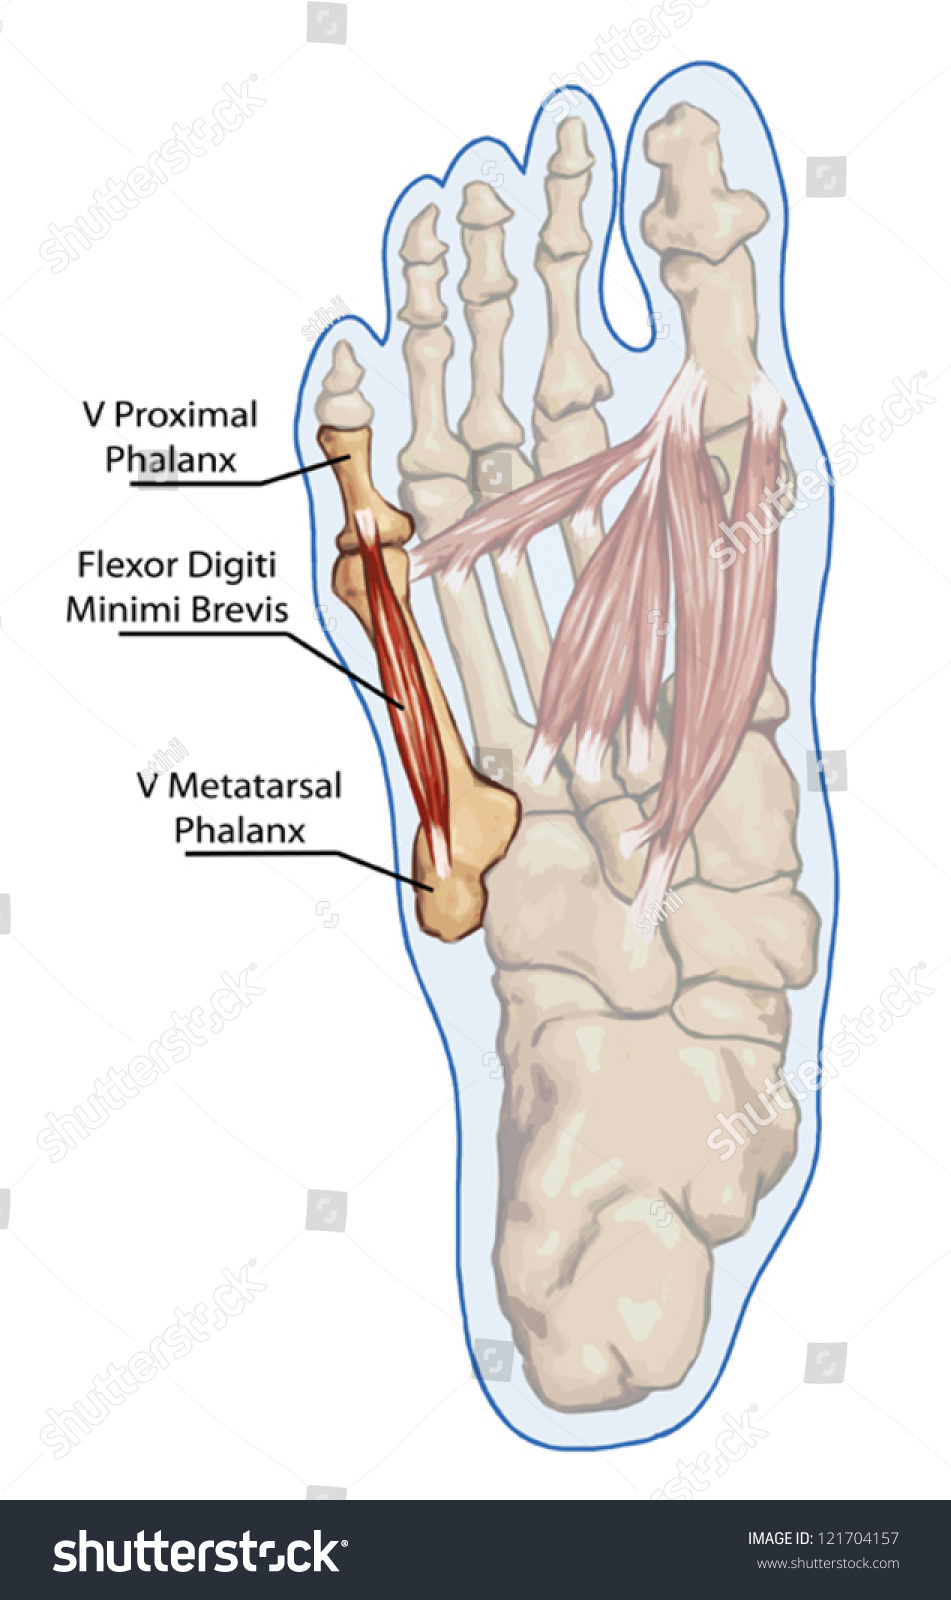 Digiti Minimi Brevis Anatomy Leg Foot Stock Vector Royalty Free